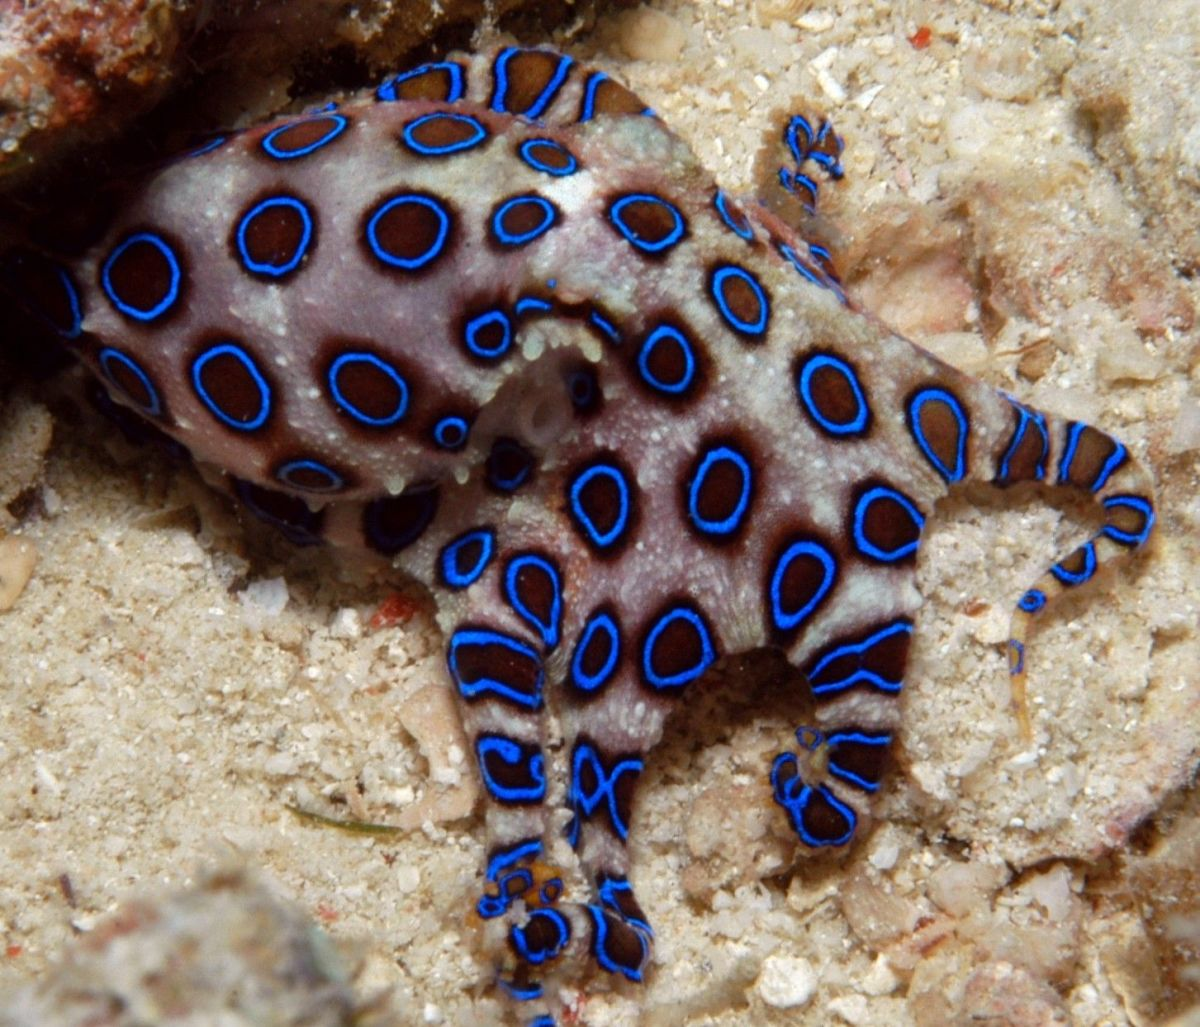 The blue-ringed octopus in its natural habitat.